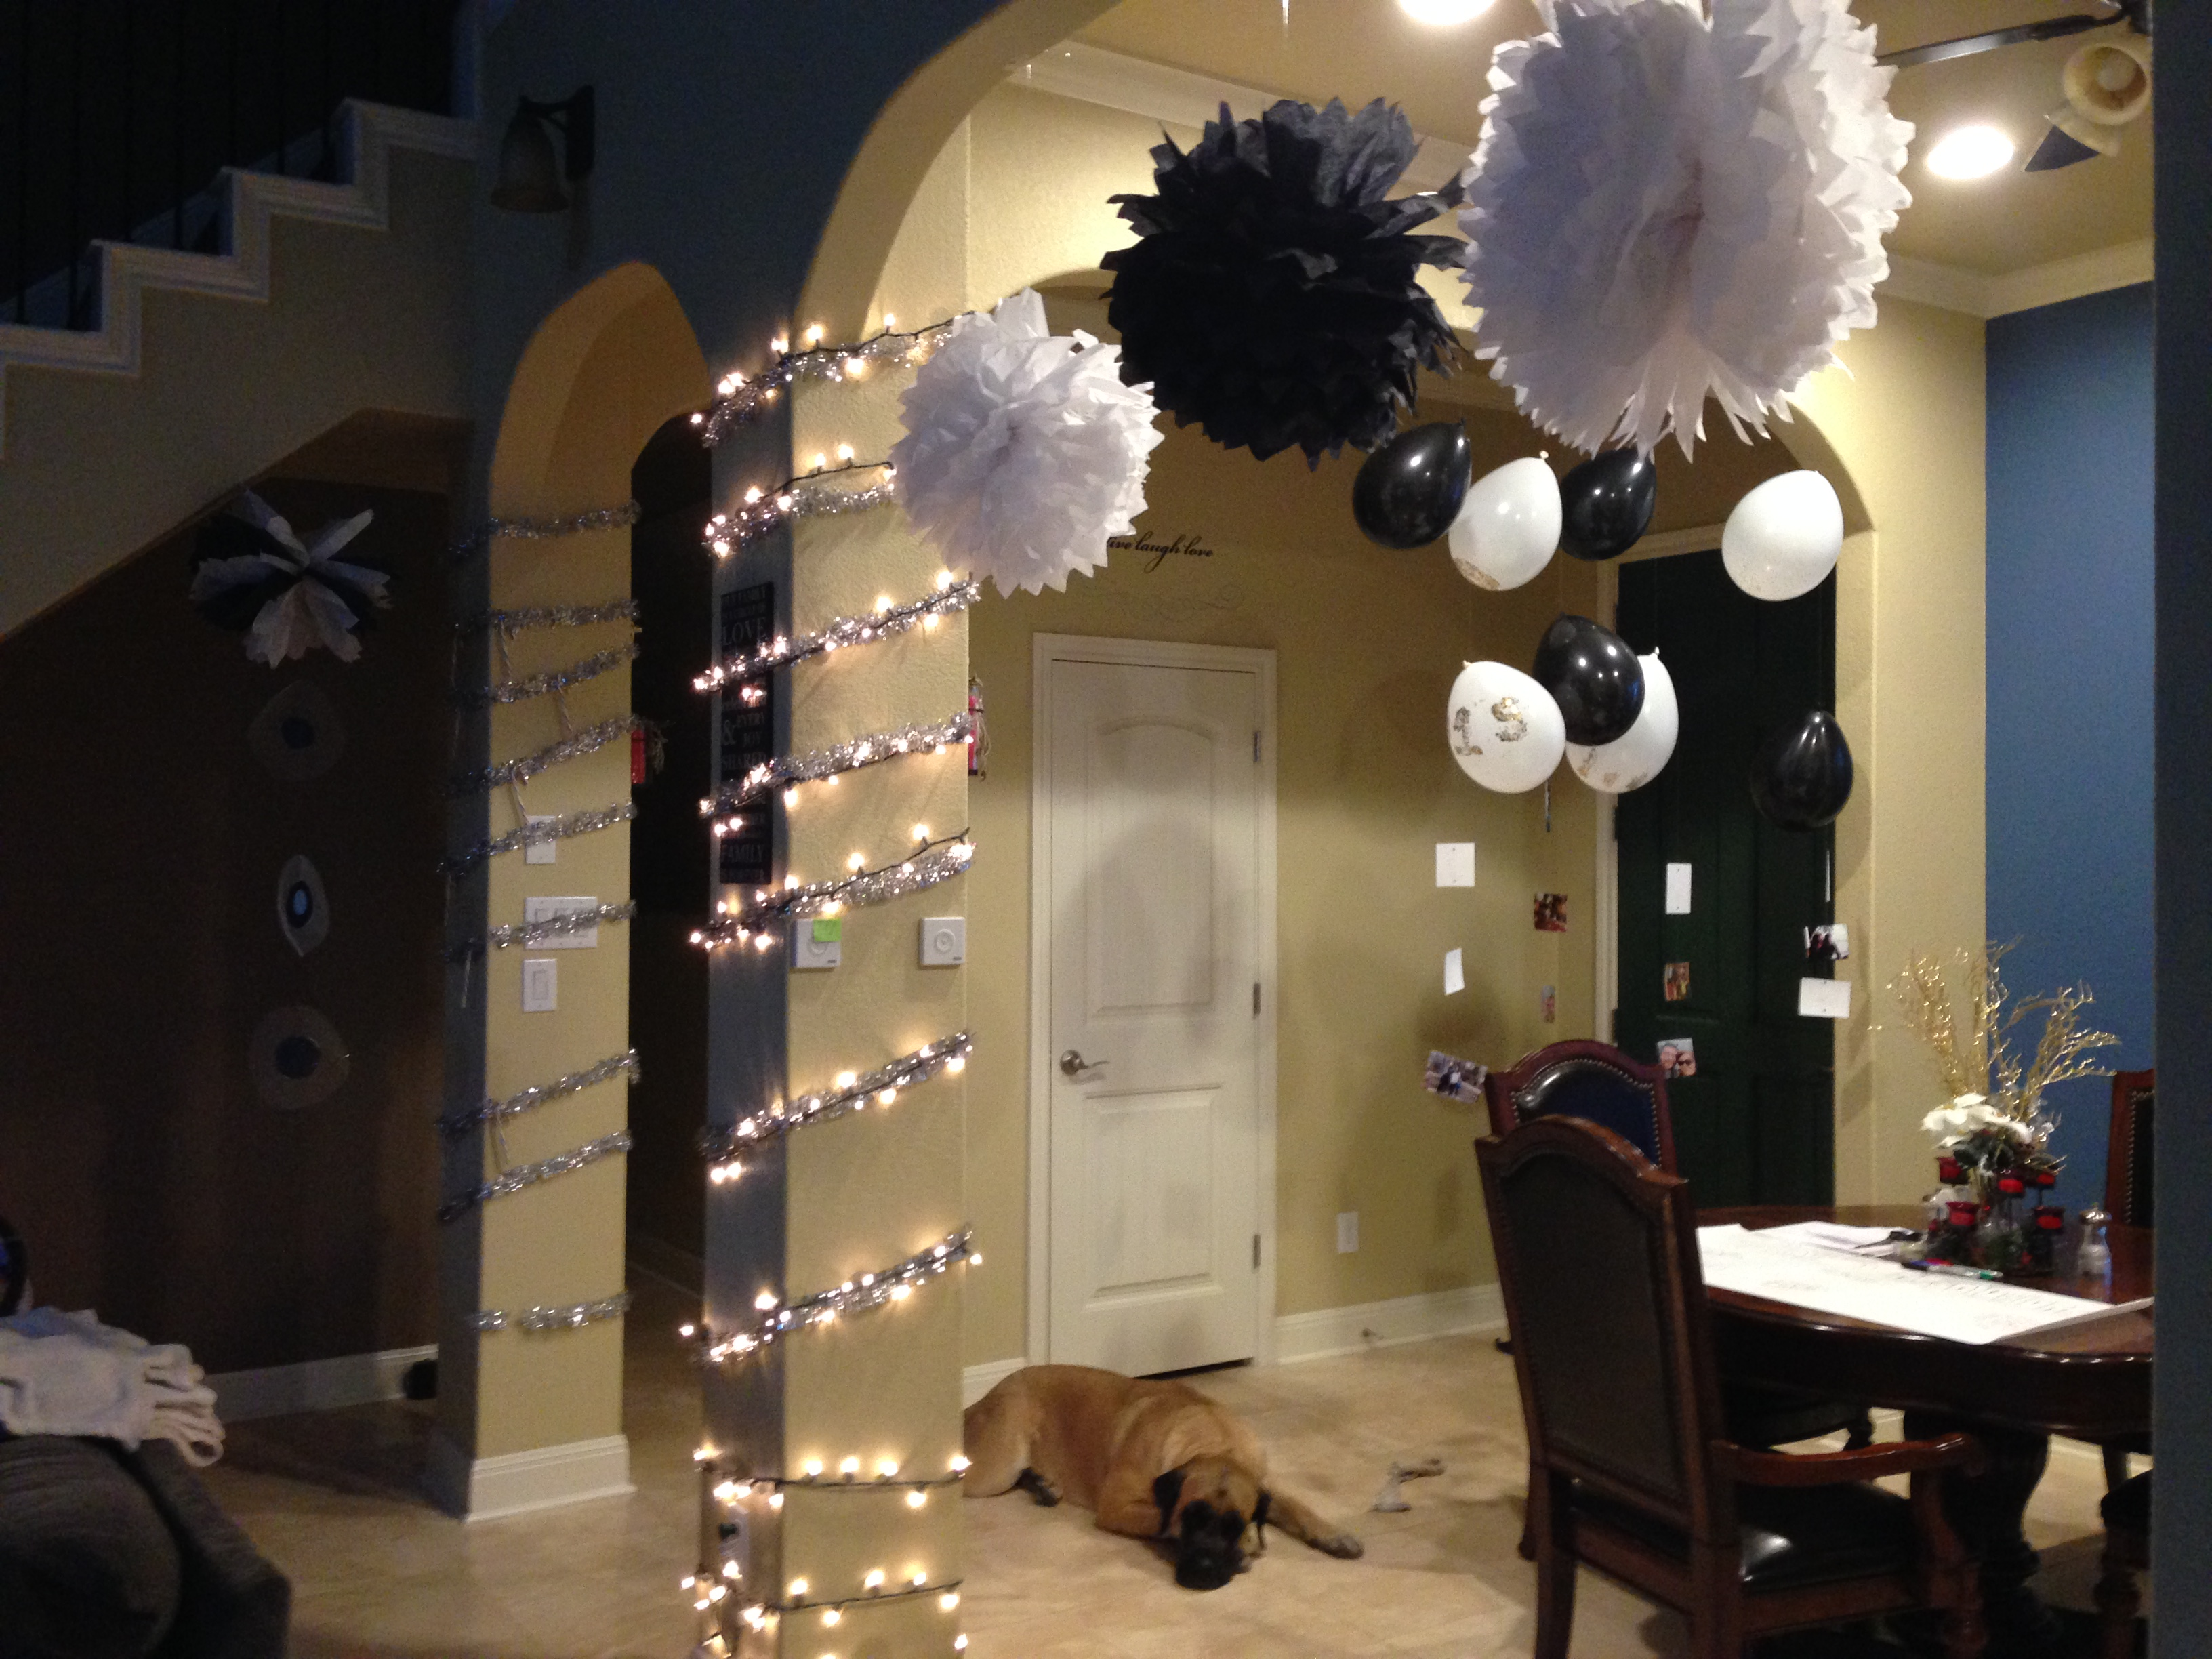 How to diy new years eve party decor on a budget the for Hanging pom poms from ceiling